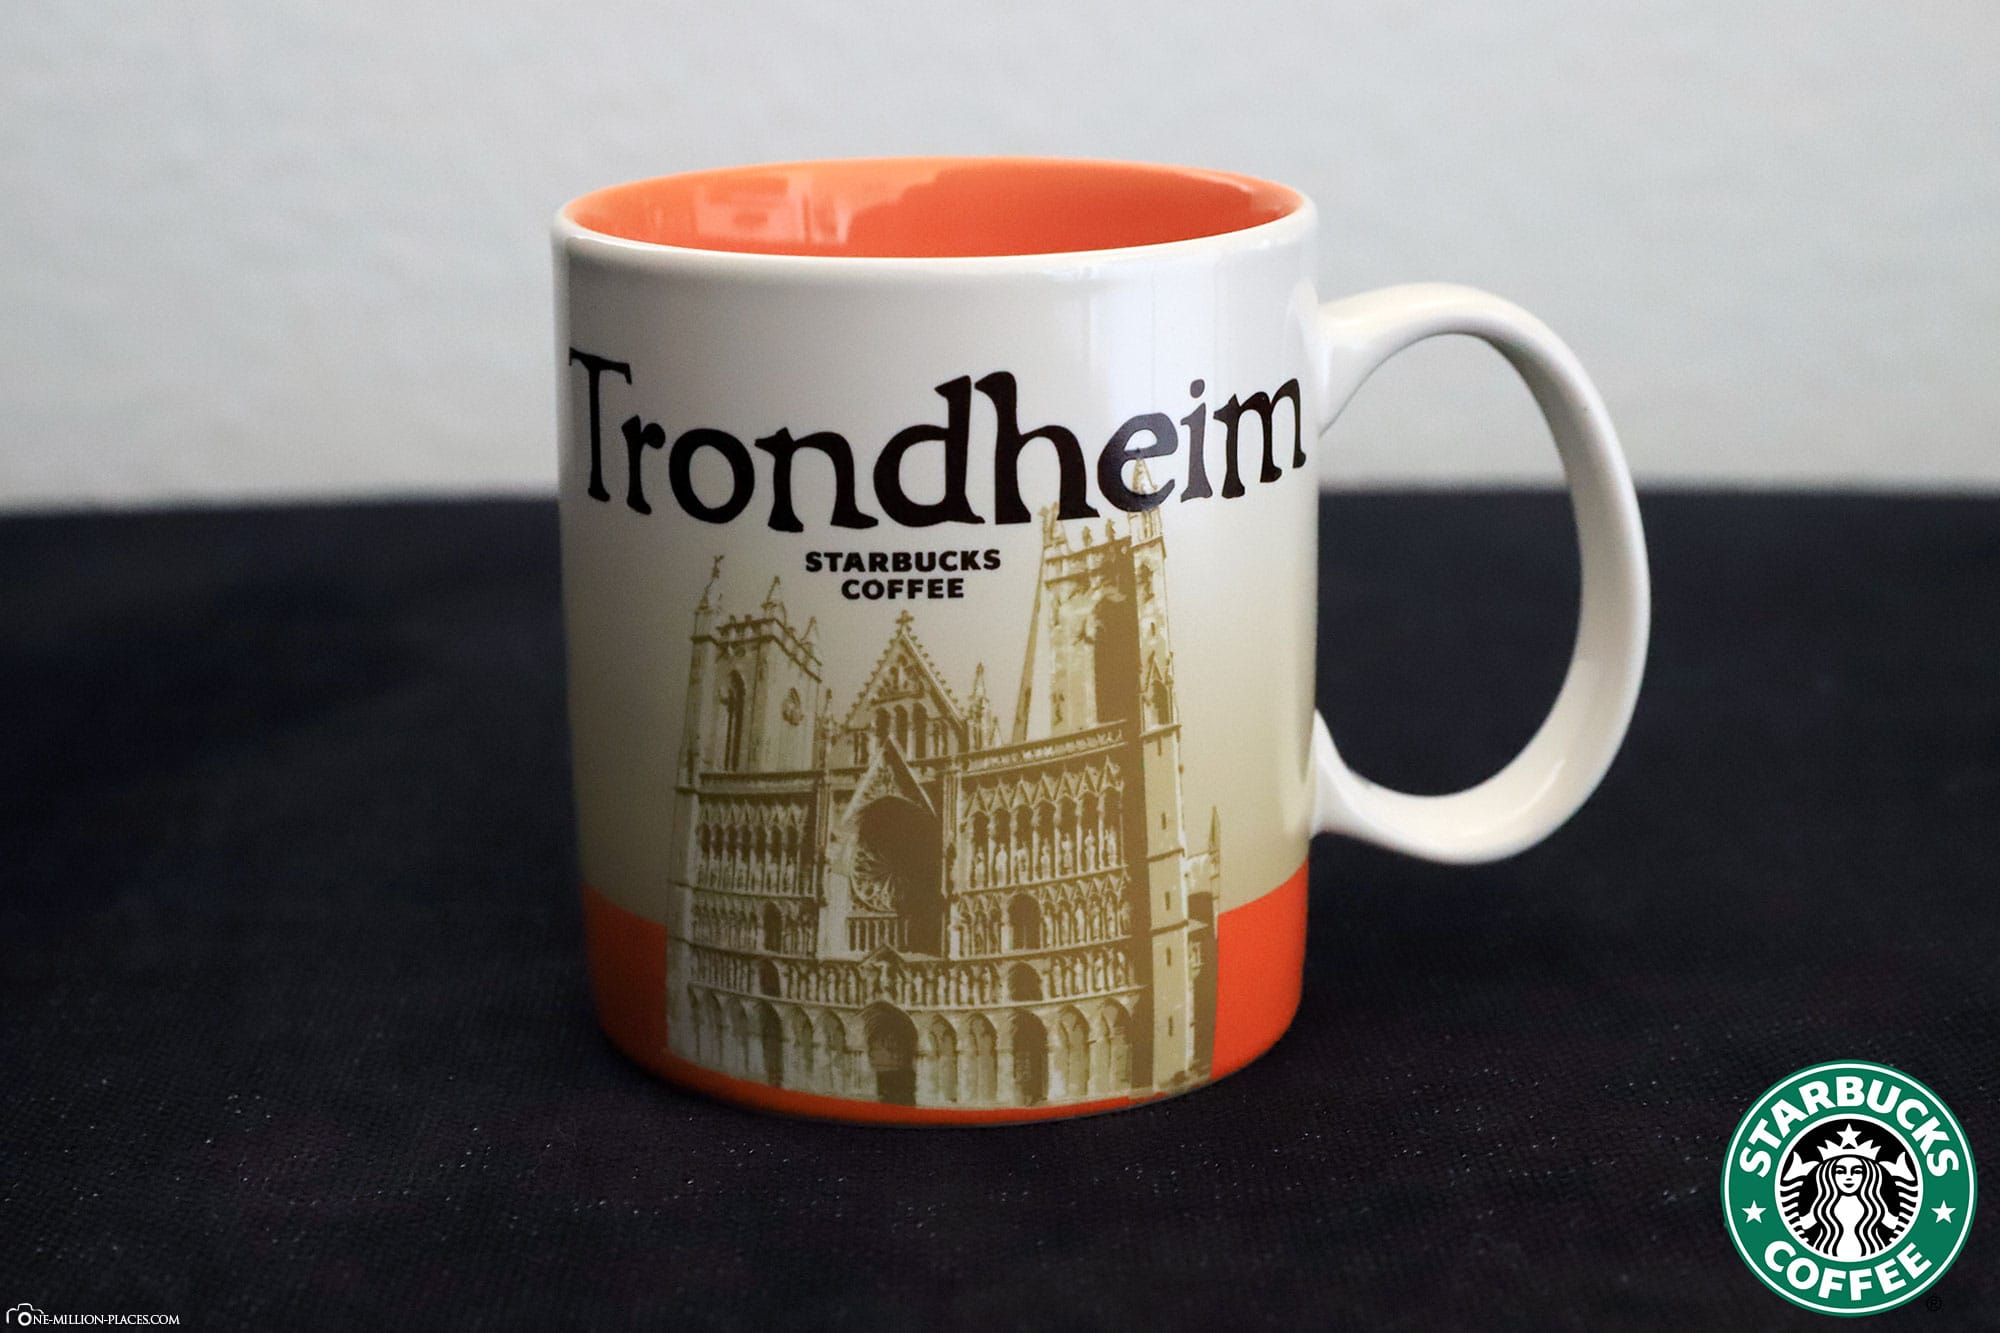 Trondheim, Starbucks Cup, Global Icon Series, City Mugs, Collection, Norway, Travelreport